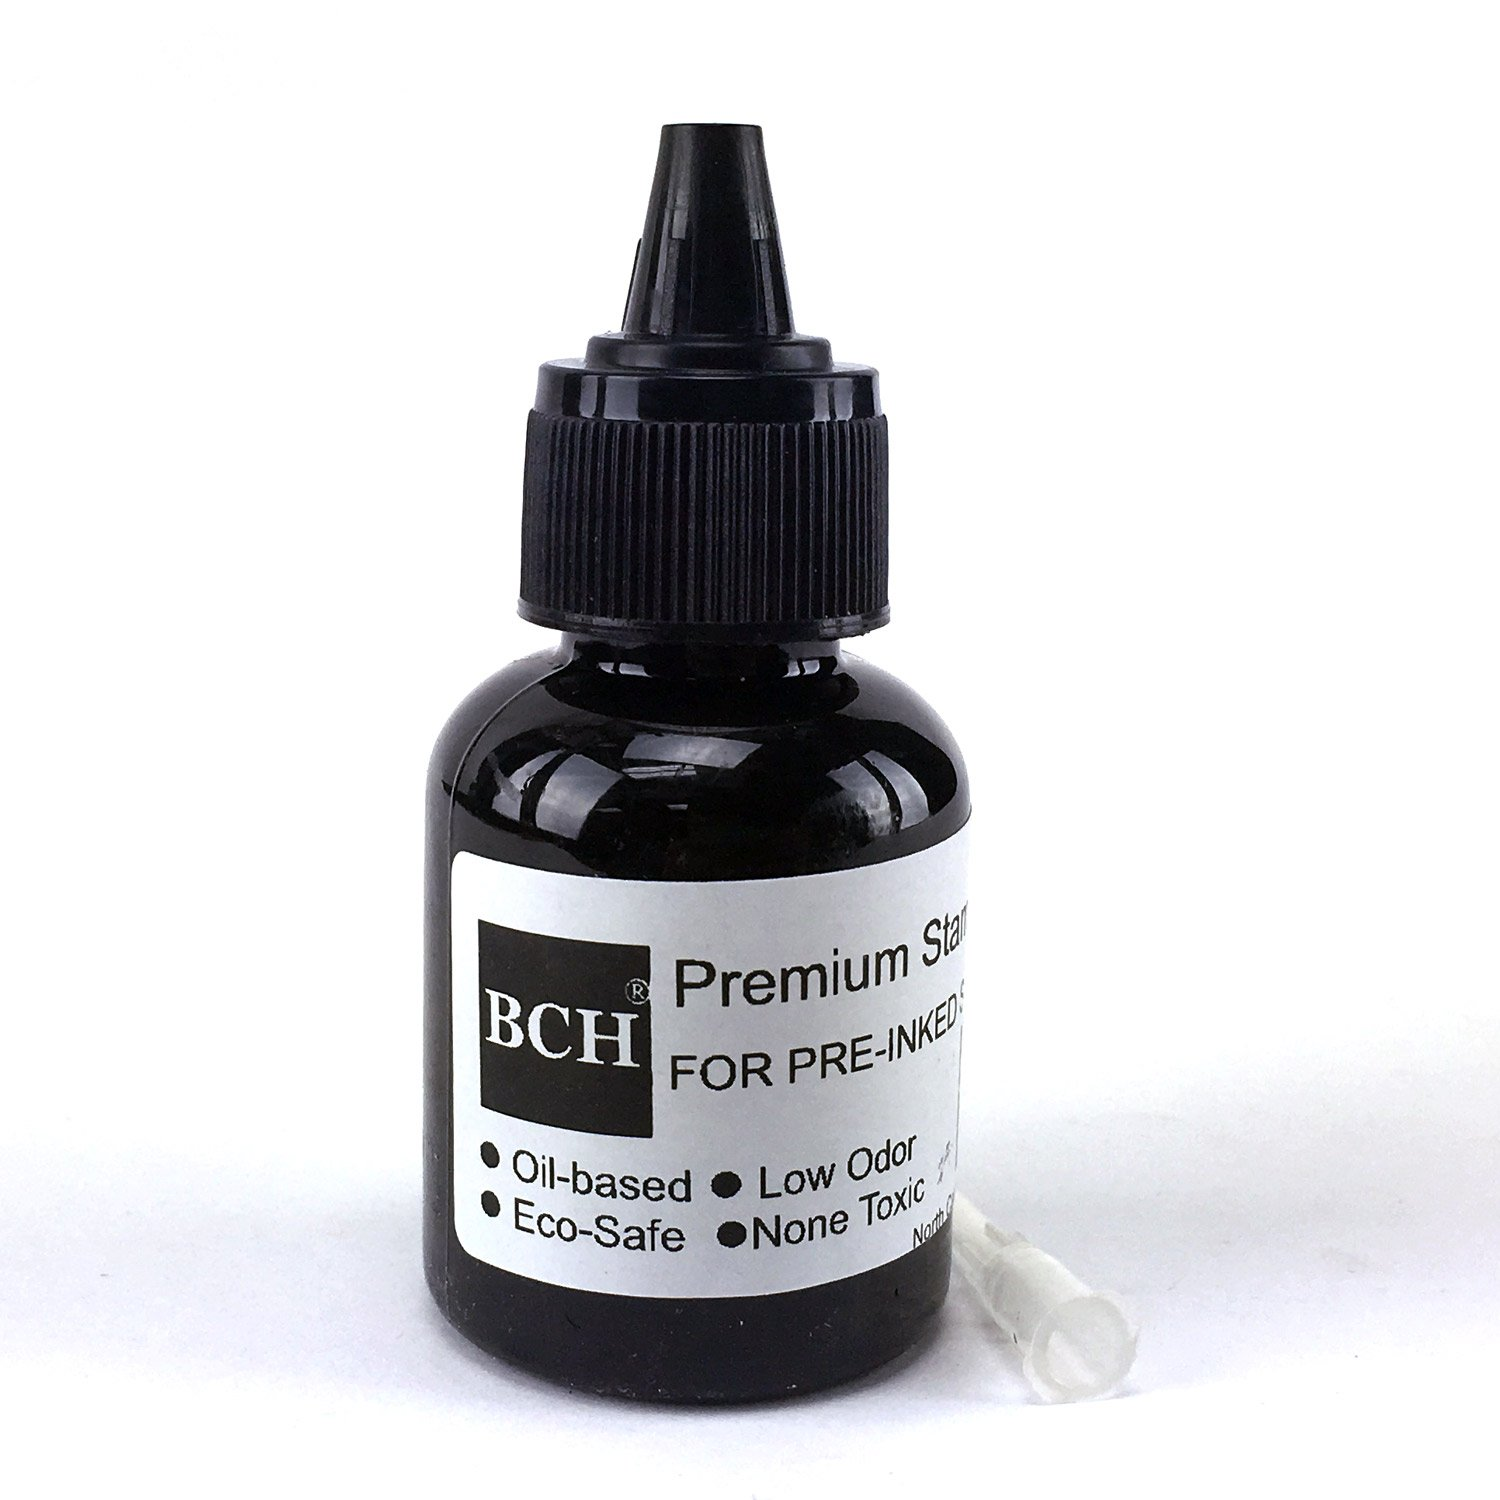 Black Stamp Refill Ink by BCH - Oil-Based 1 oz Bottle for Roller Stamp or Pre-Inked Rubber Gel Pads - 30ml by BCH (Image #2)